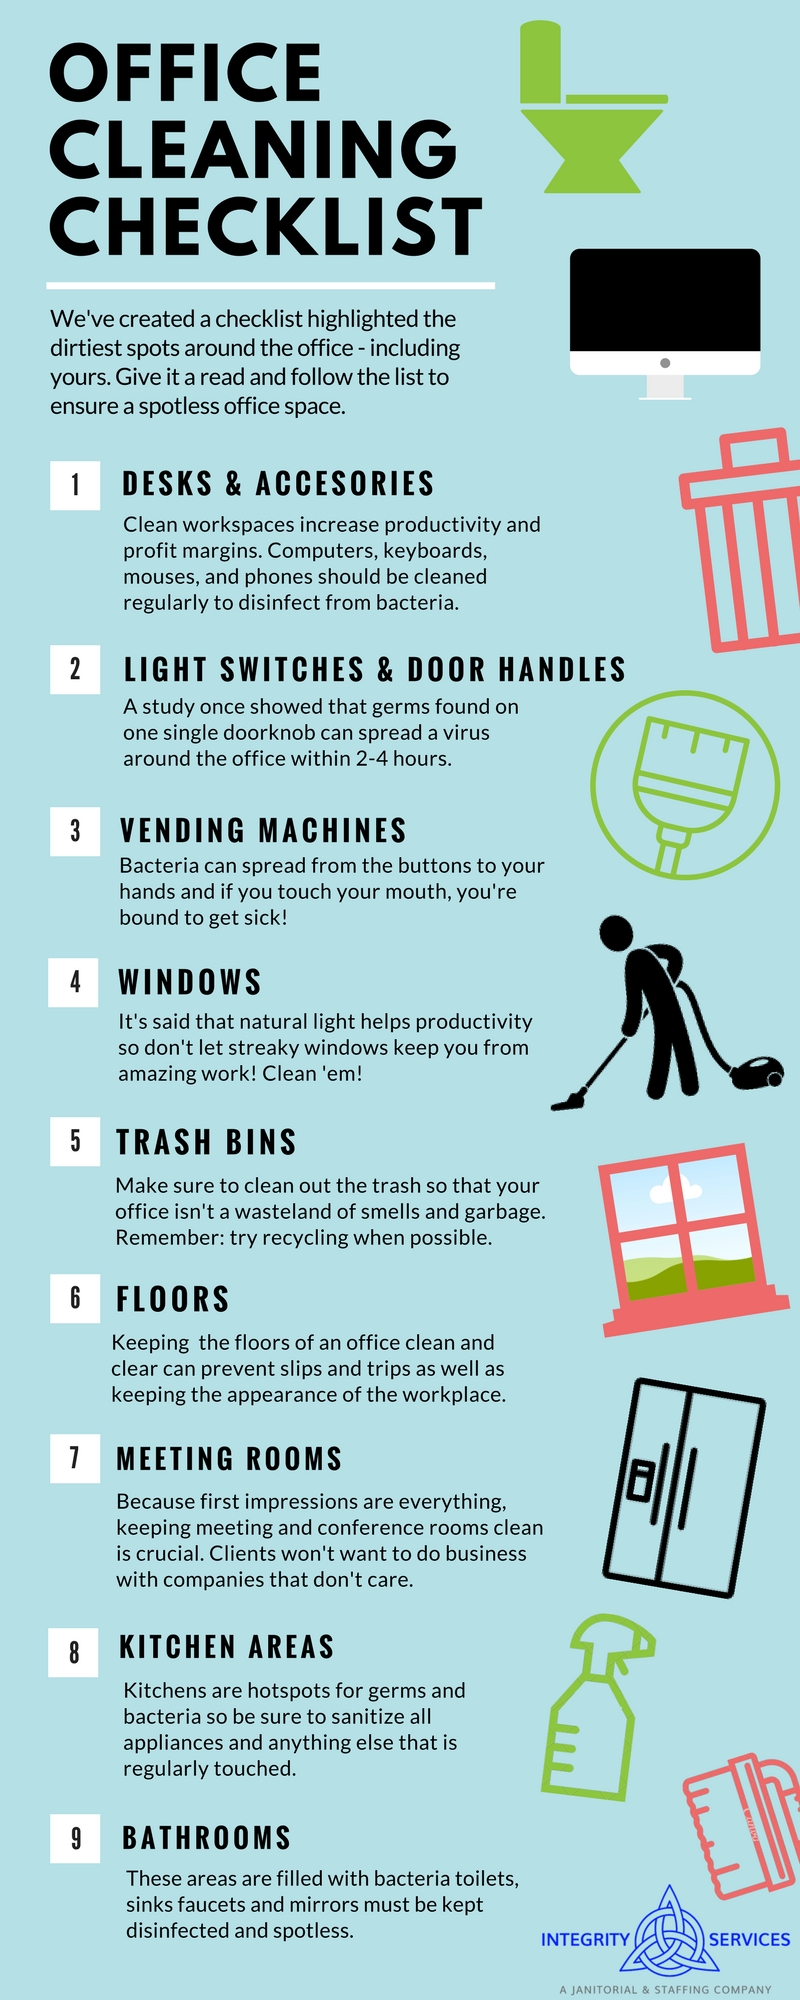 Office-Cleaning-Checklist-2.jpg